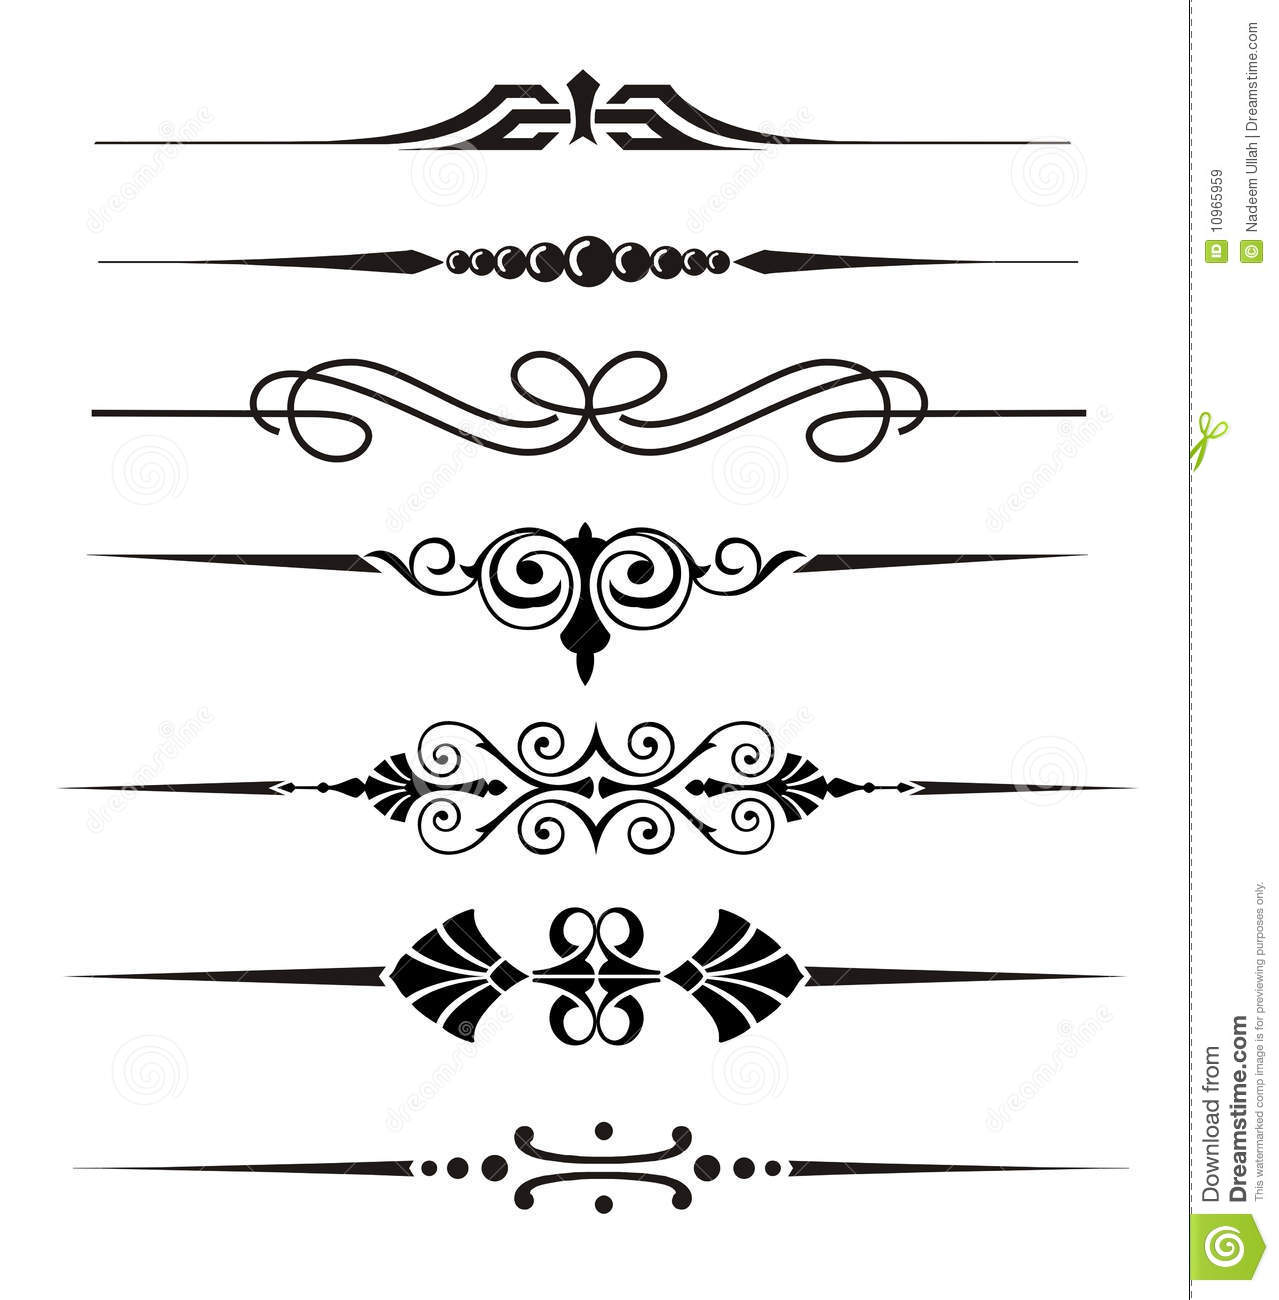 vector elements royalty free stock images image 10965959 clip art witches cauldron clip art witches dangling feet